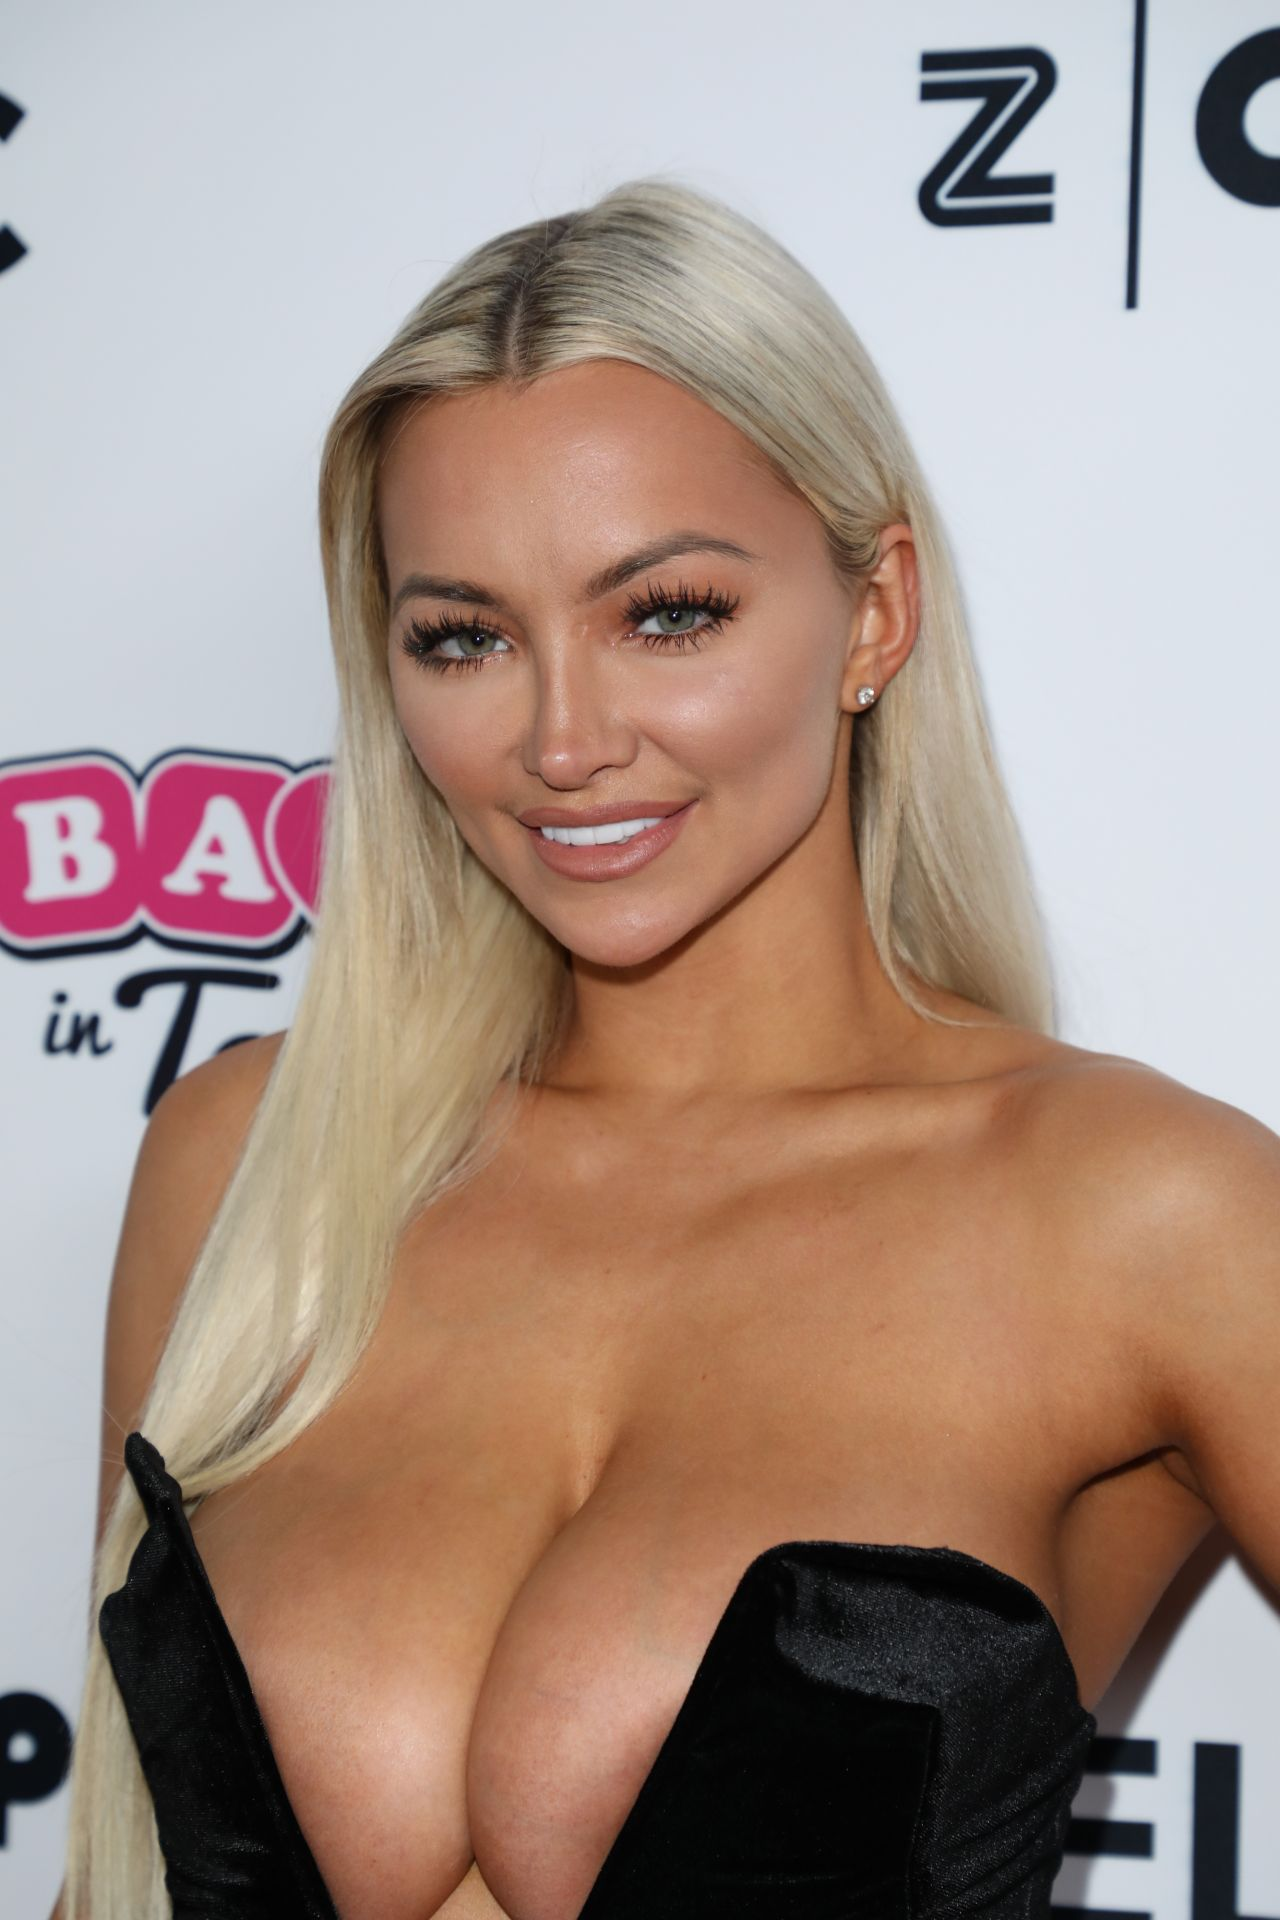 Lindsey Pelas  Babes In Toyland Pet Edition Fundraiser In -7600